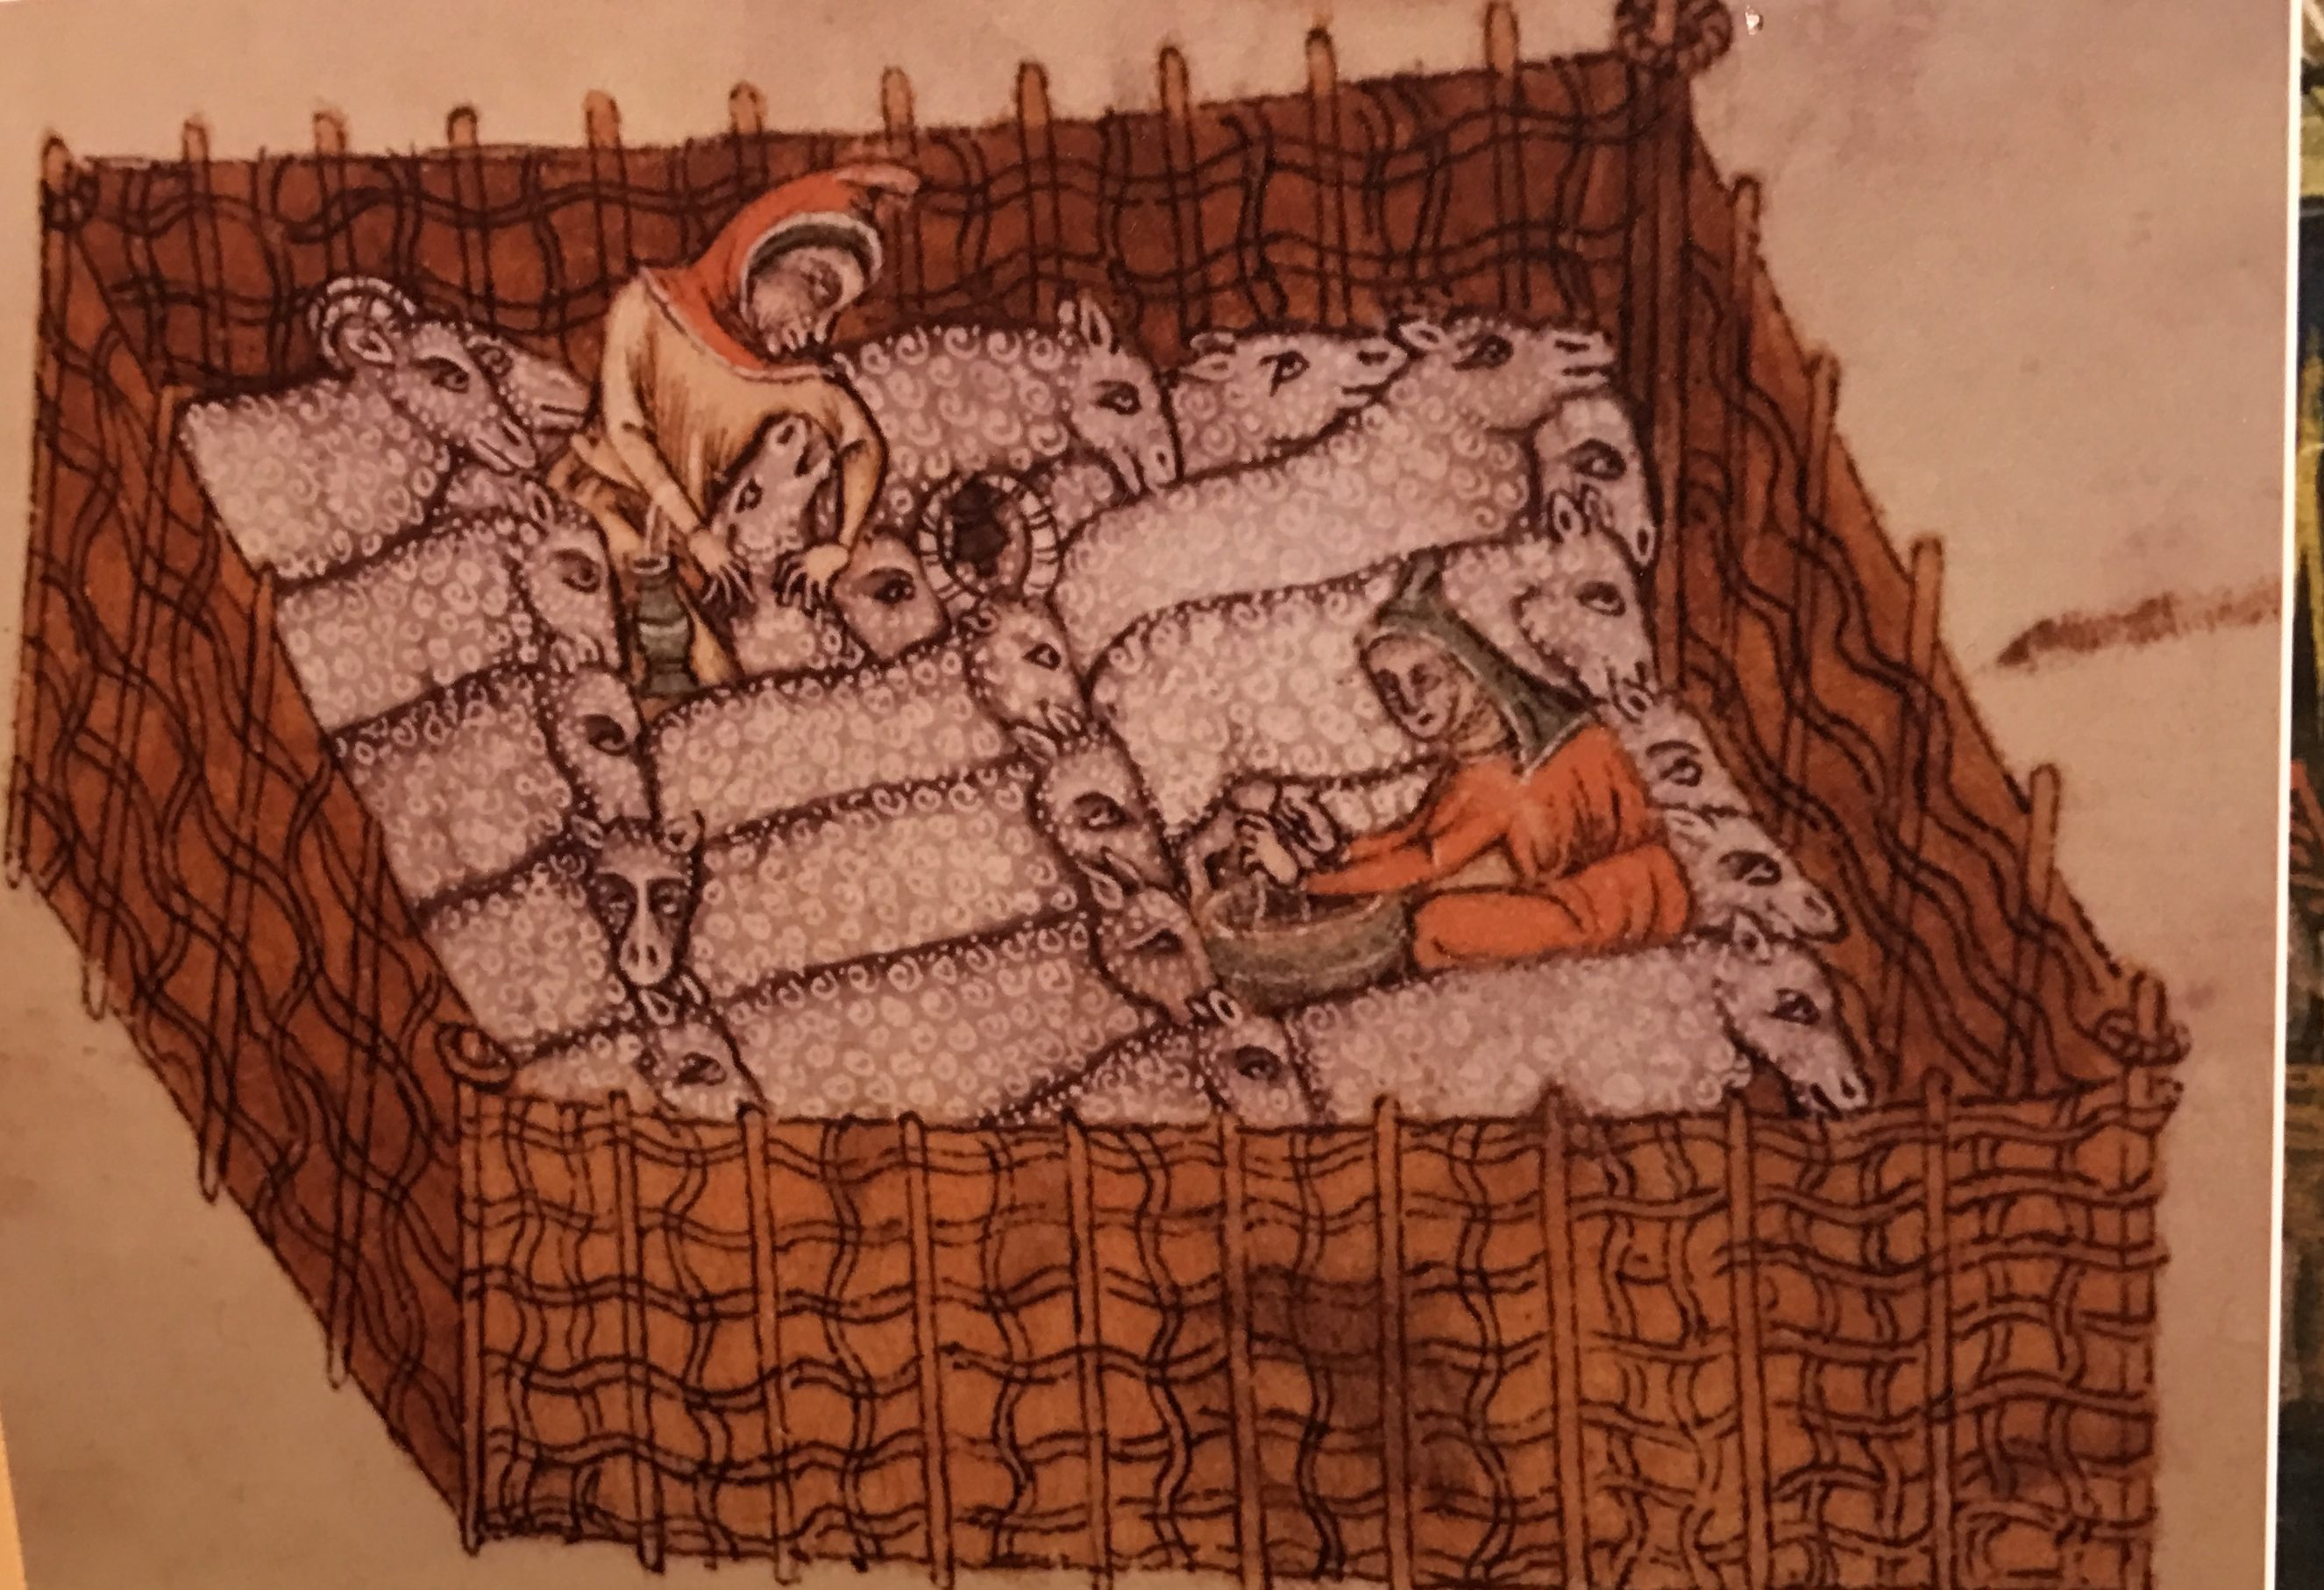 Sheep in a pen (exhibit in the Cirencester museum)